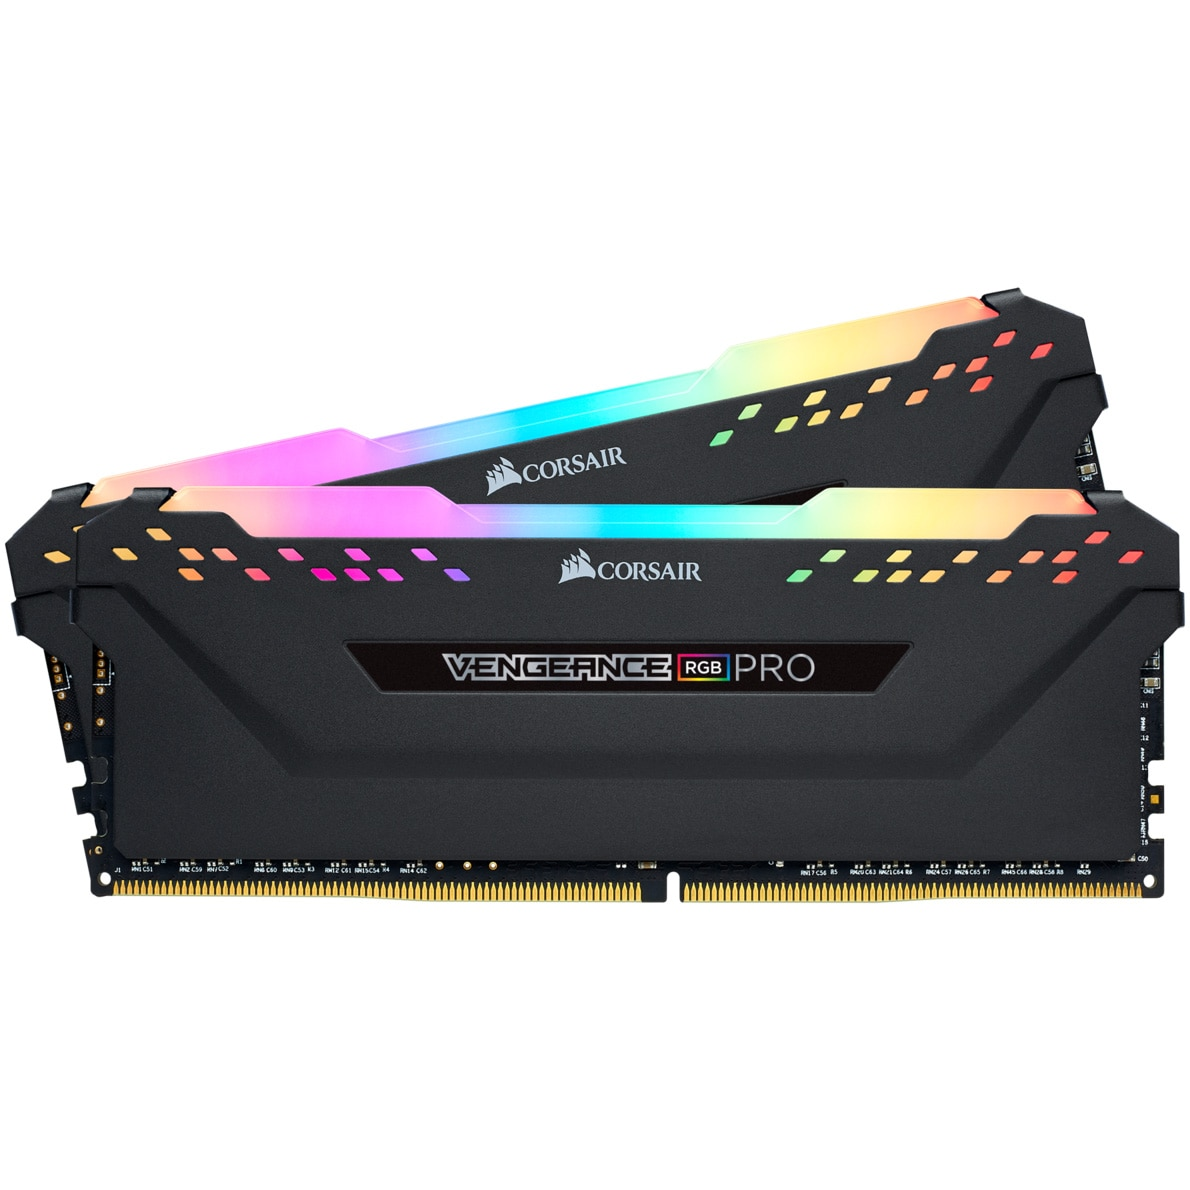 Fotografie Memorie Corsair Vengeance RGB PRO 16GB, DDR4, 3600MHz, CL18, Dual Channel Kit